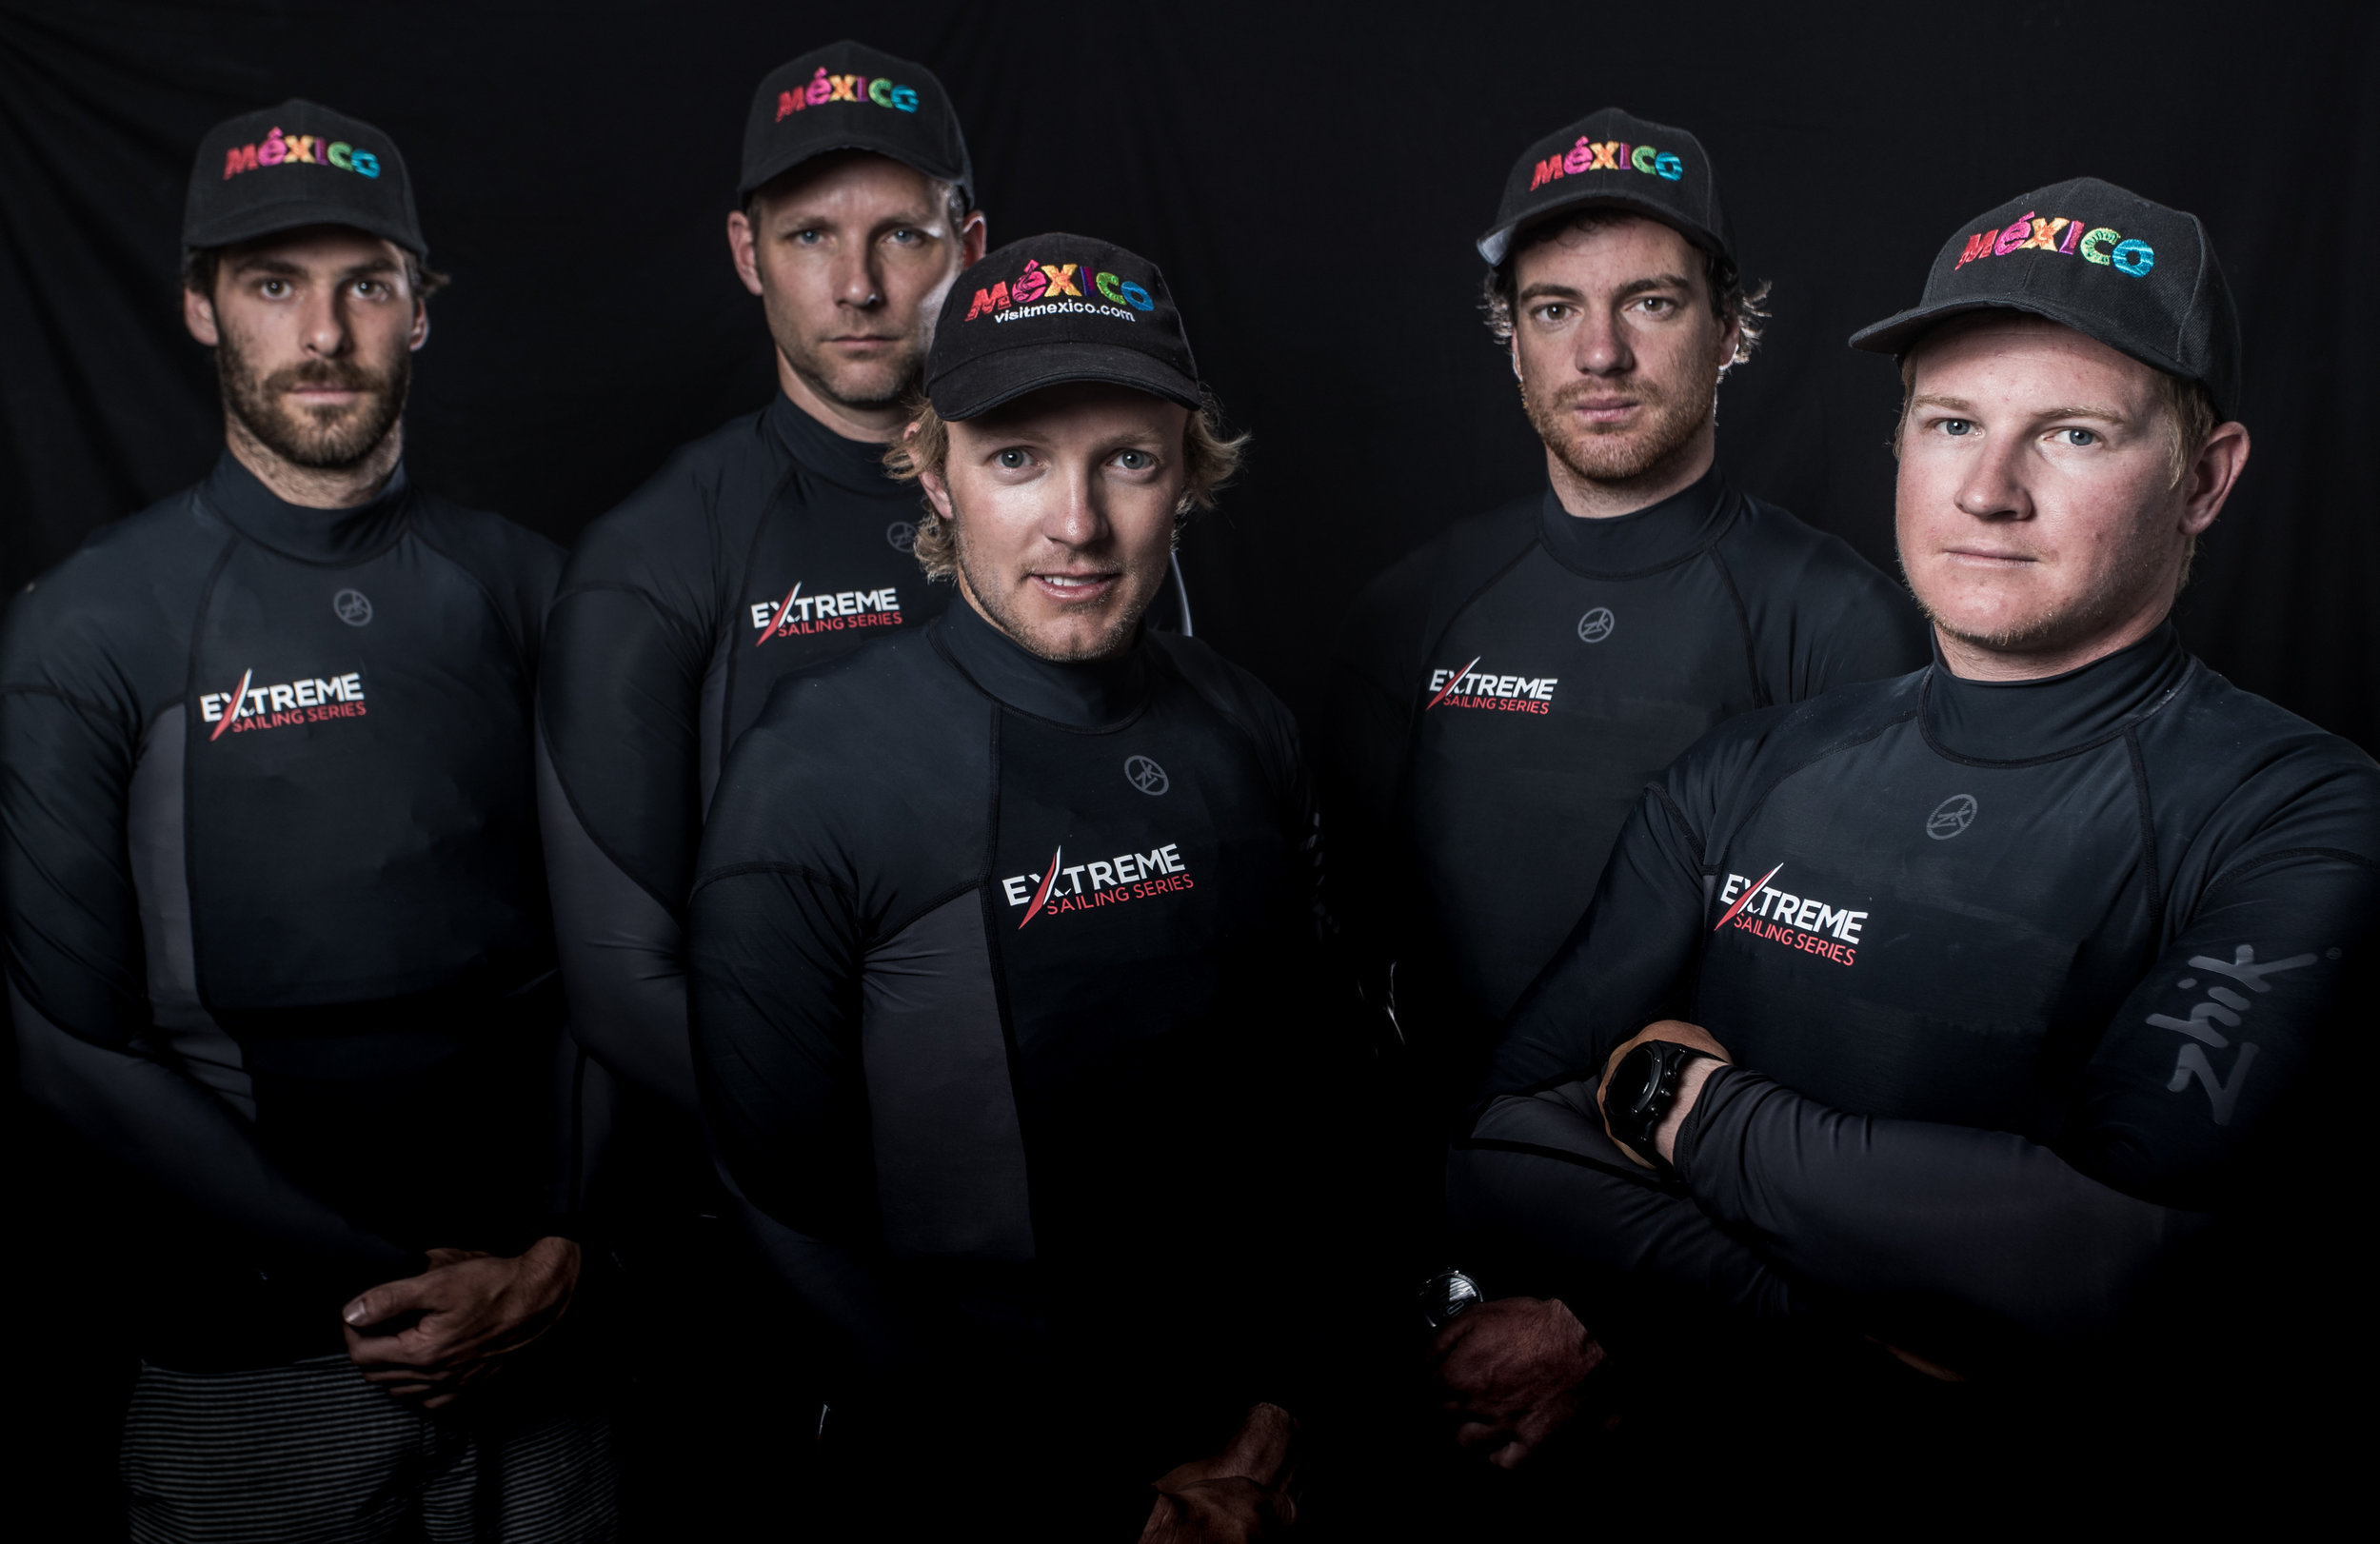 Team Mexico Extreme (The Lads) - Photo @lloydimages